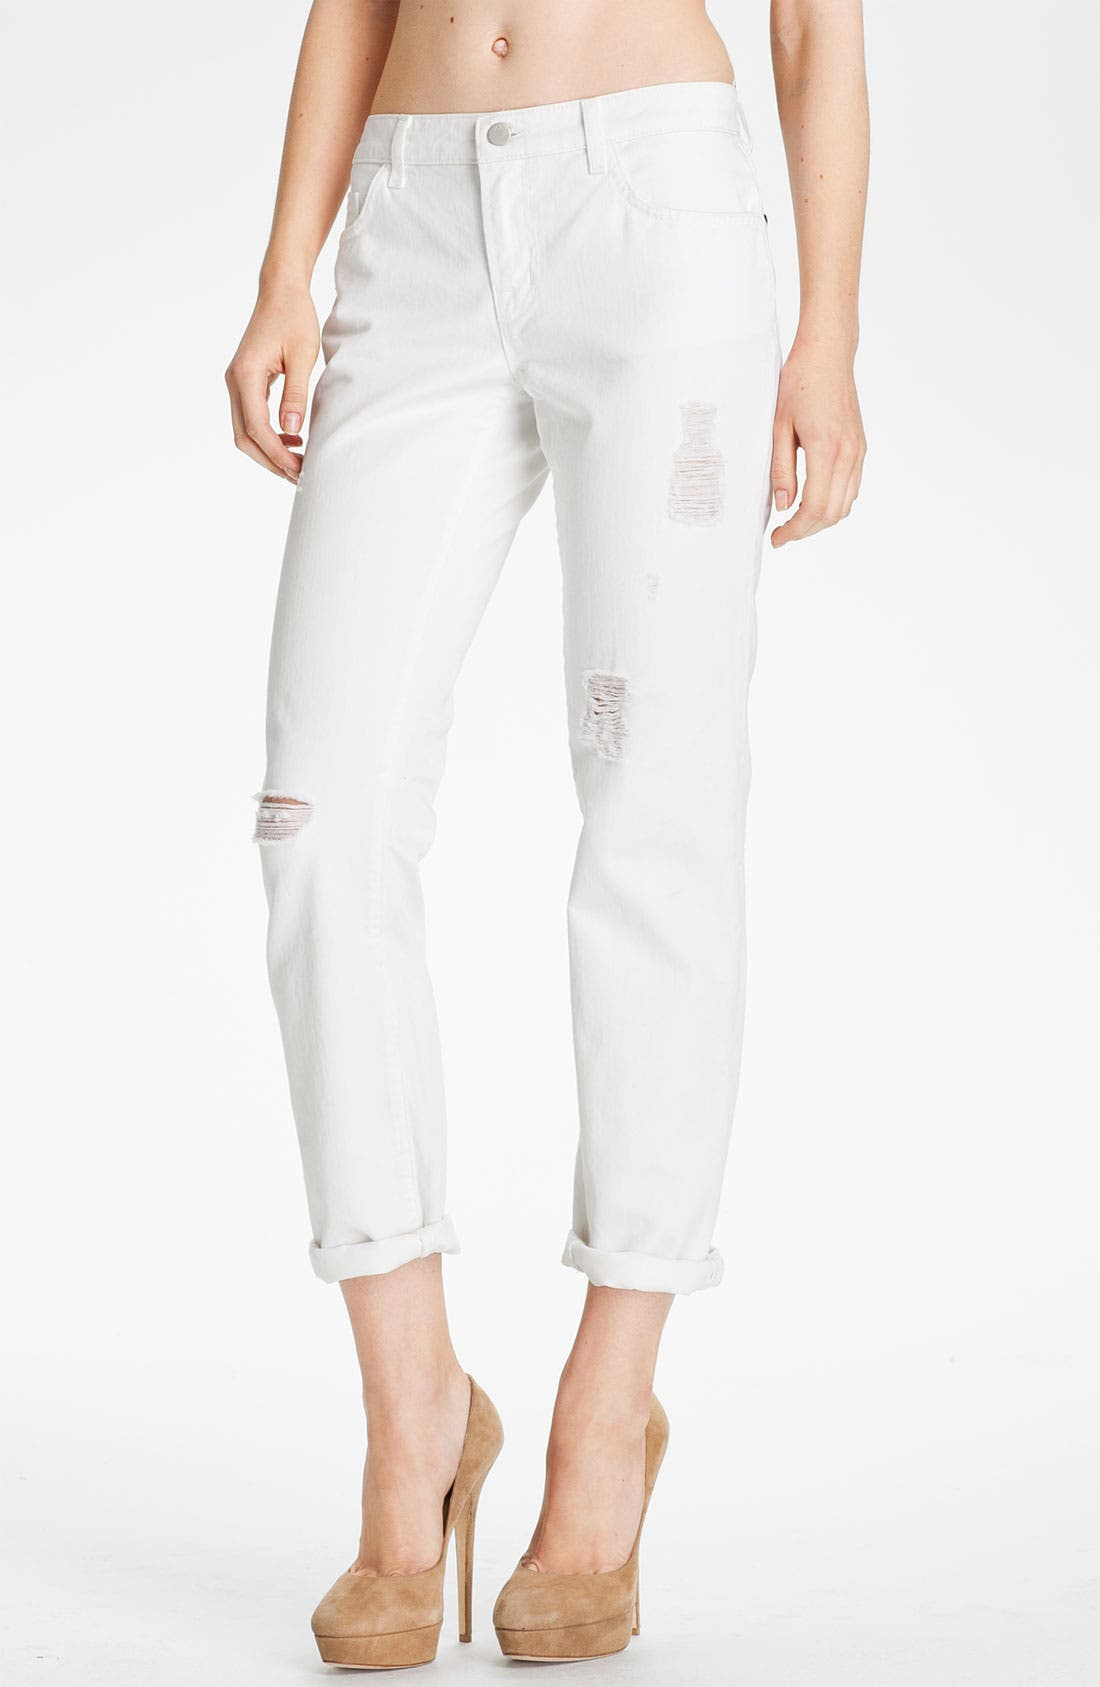 Alternate Image 1 Selected - J Brand 'Aidan' Distressed Boyfriend Fit Jeans (White Destructed)